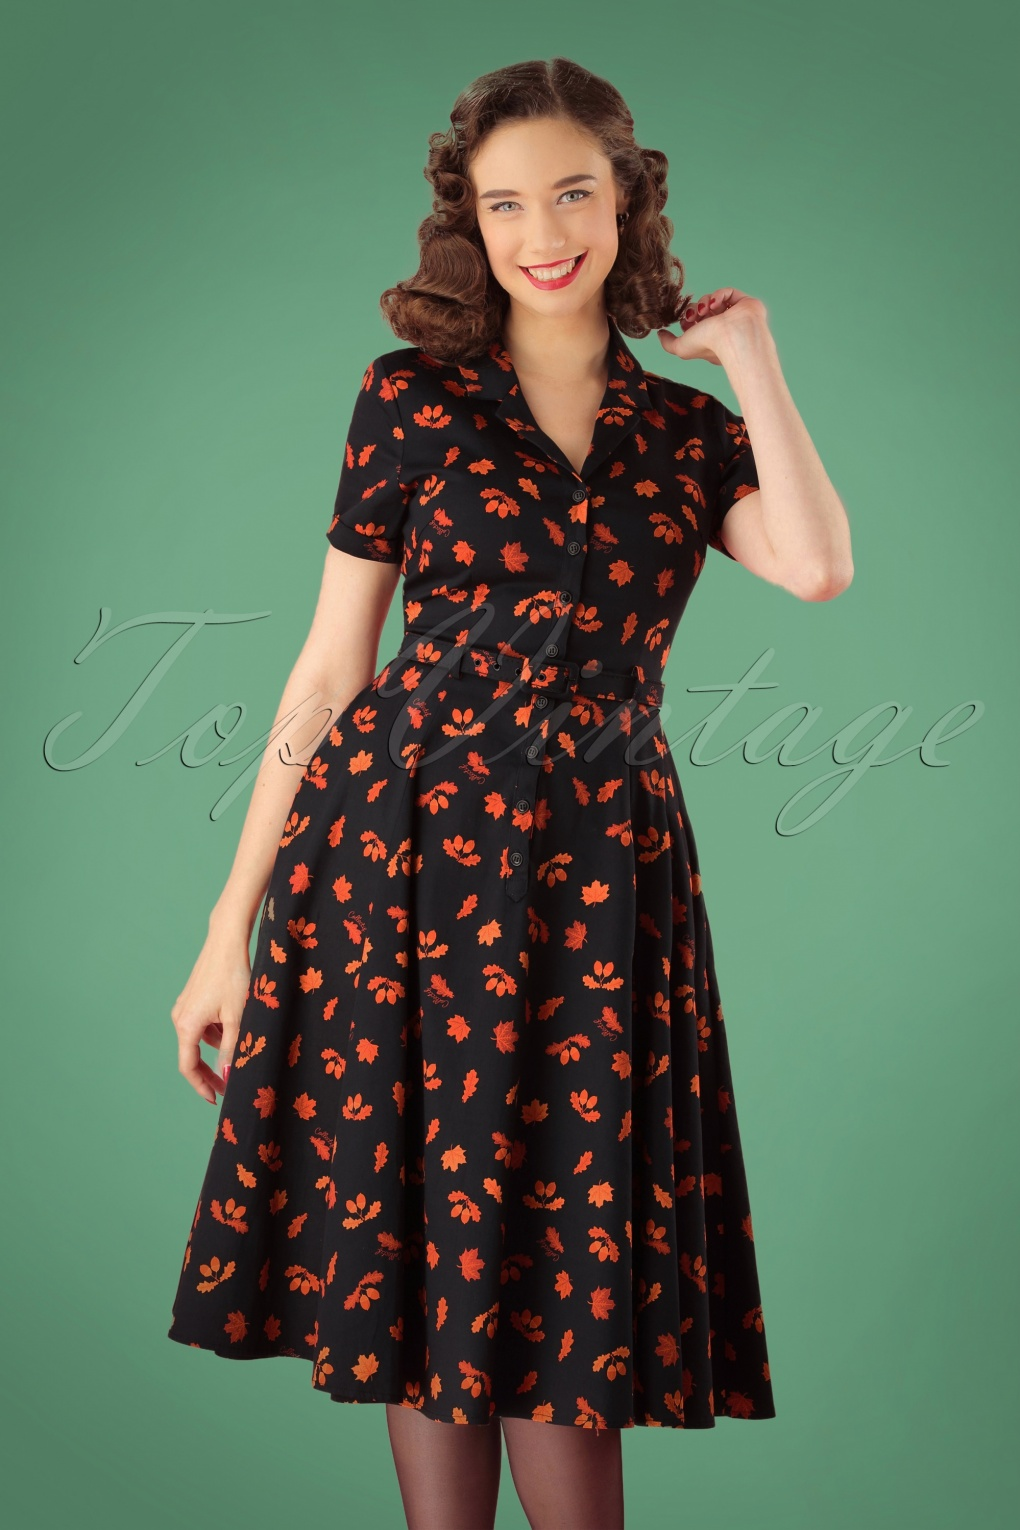 1950s Dresses, 50s Dresses | 1950s Style Dresses 50s Caterina Acorn Swing Dress in Black £74.79 AT vintagedancer.com